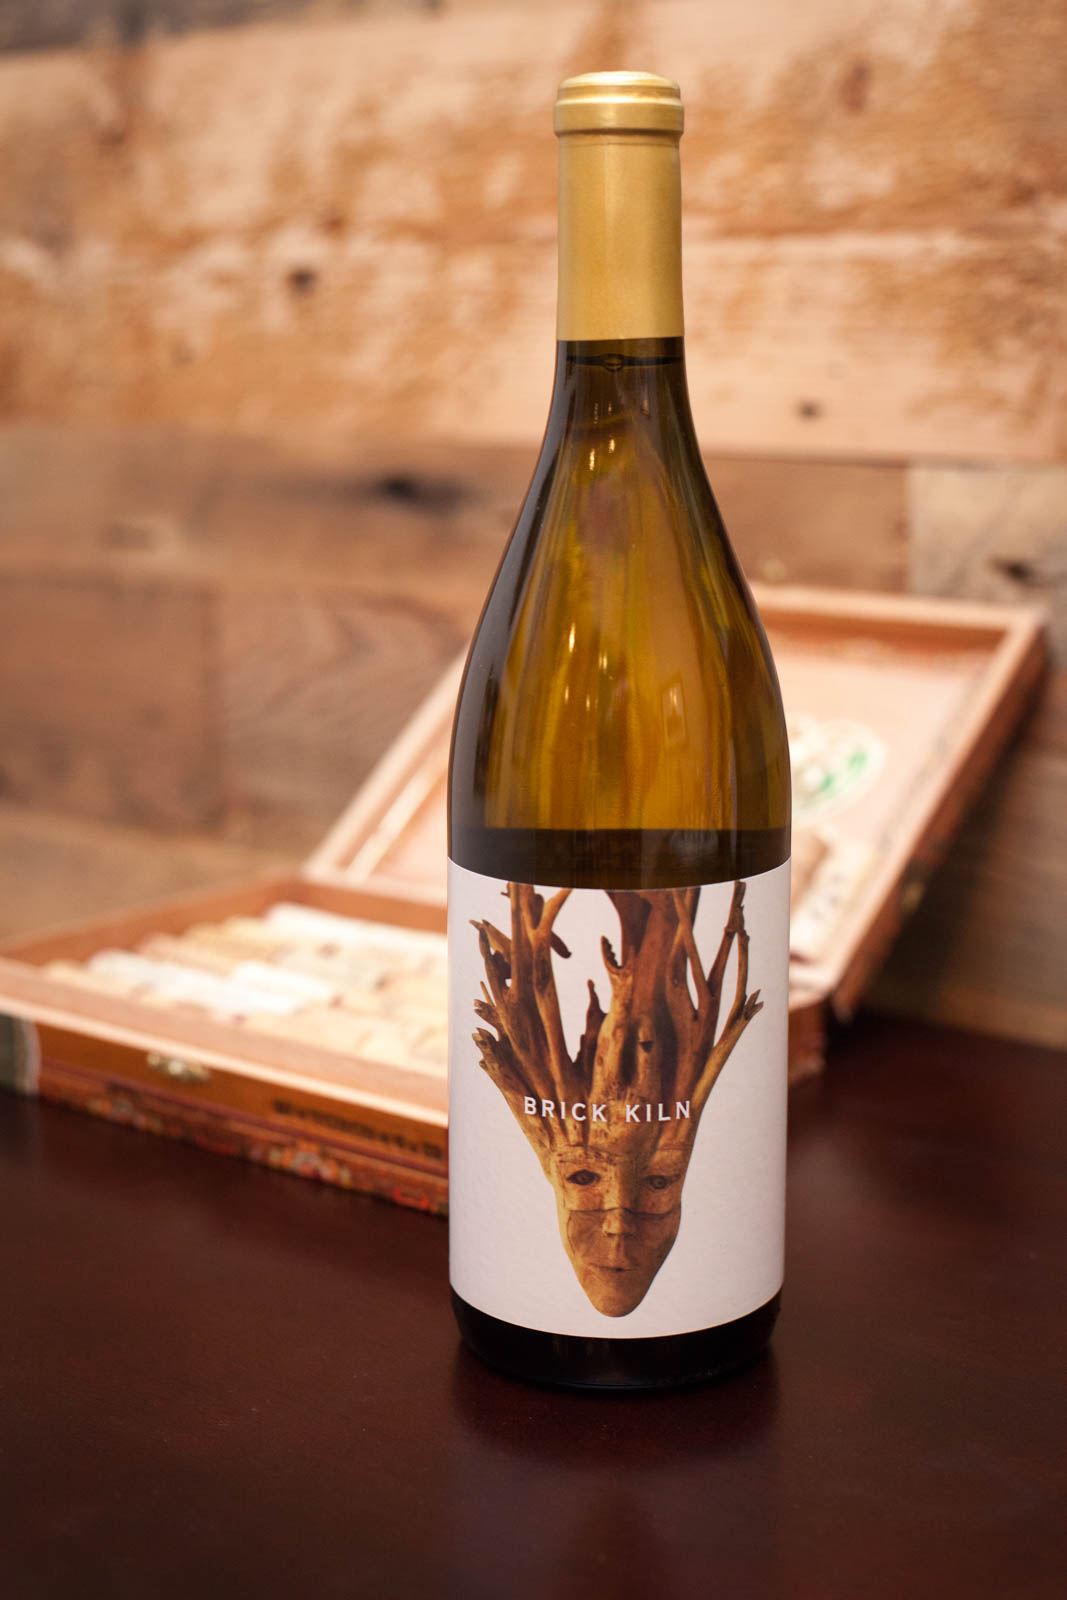 2011 Channing Daughters Brick Kiln Chardonnay